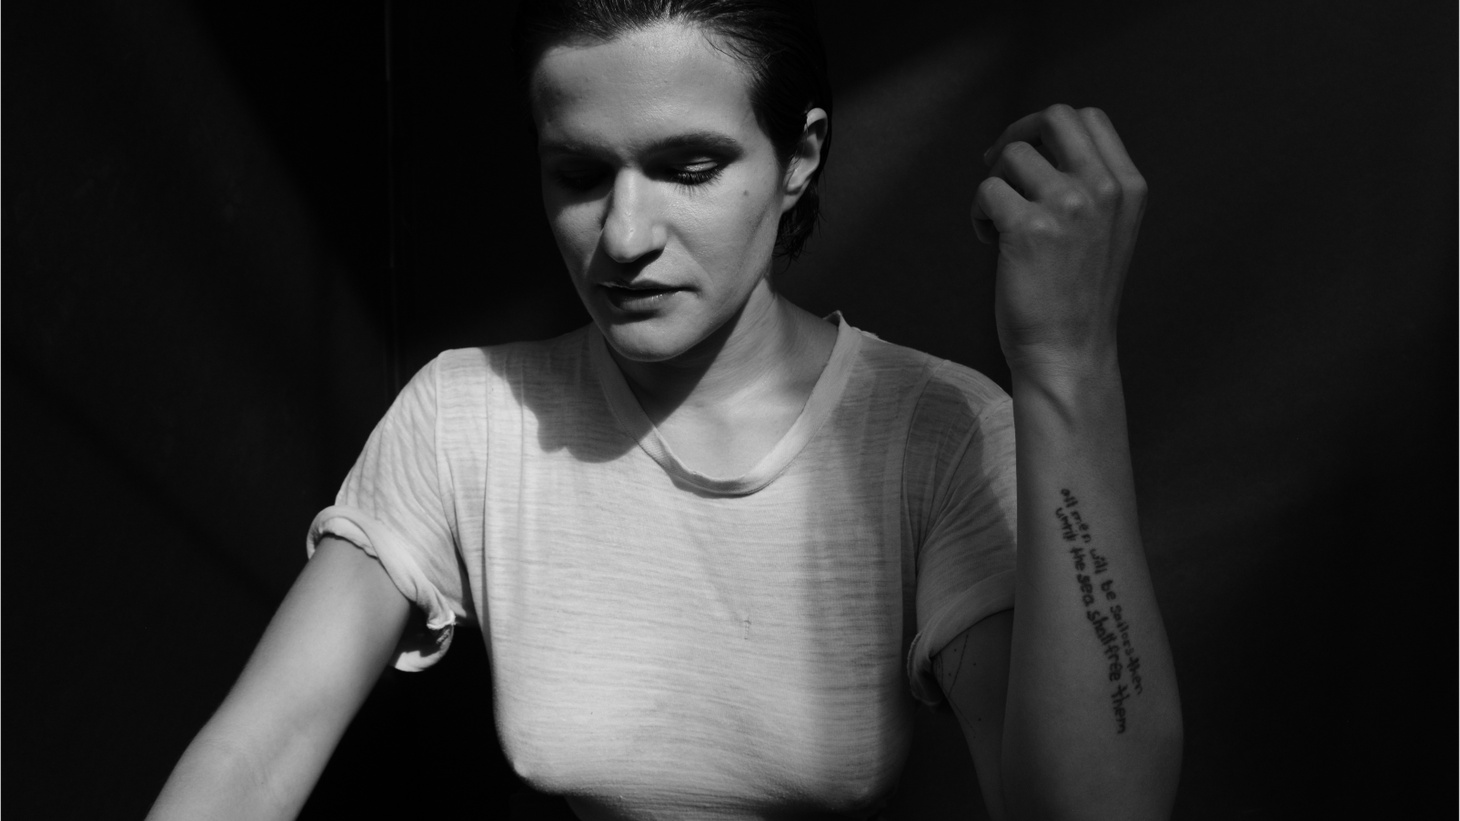 Big Thief's Adrianne Lenker has had a prolific few years. Songs come to her while sitting in the van from one city to the next, or in a myriad of green rooms she waits in before taking the stage.